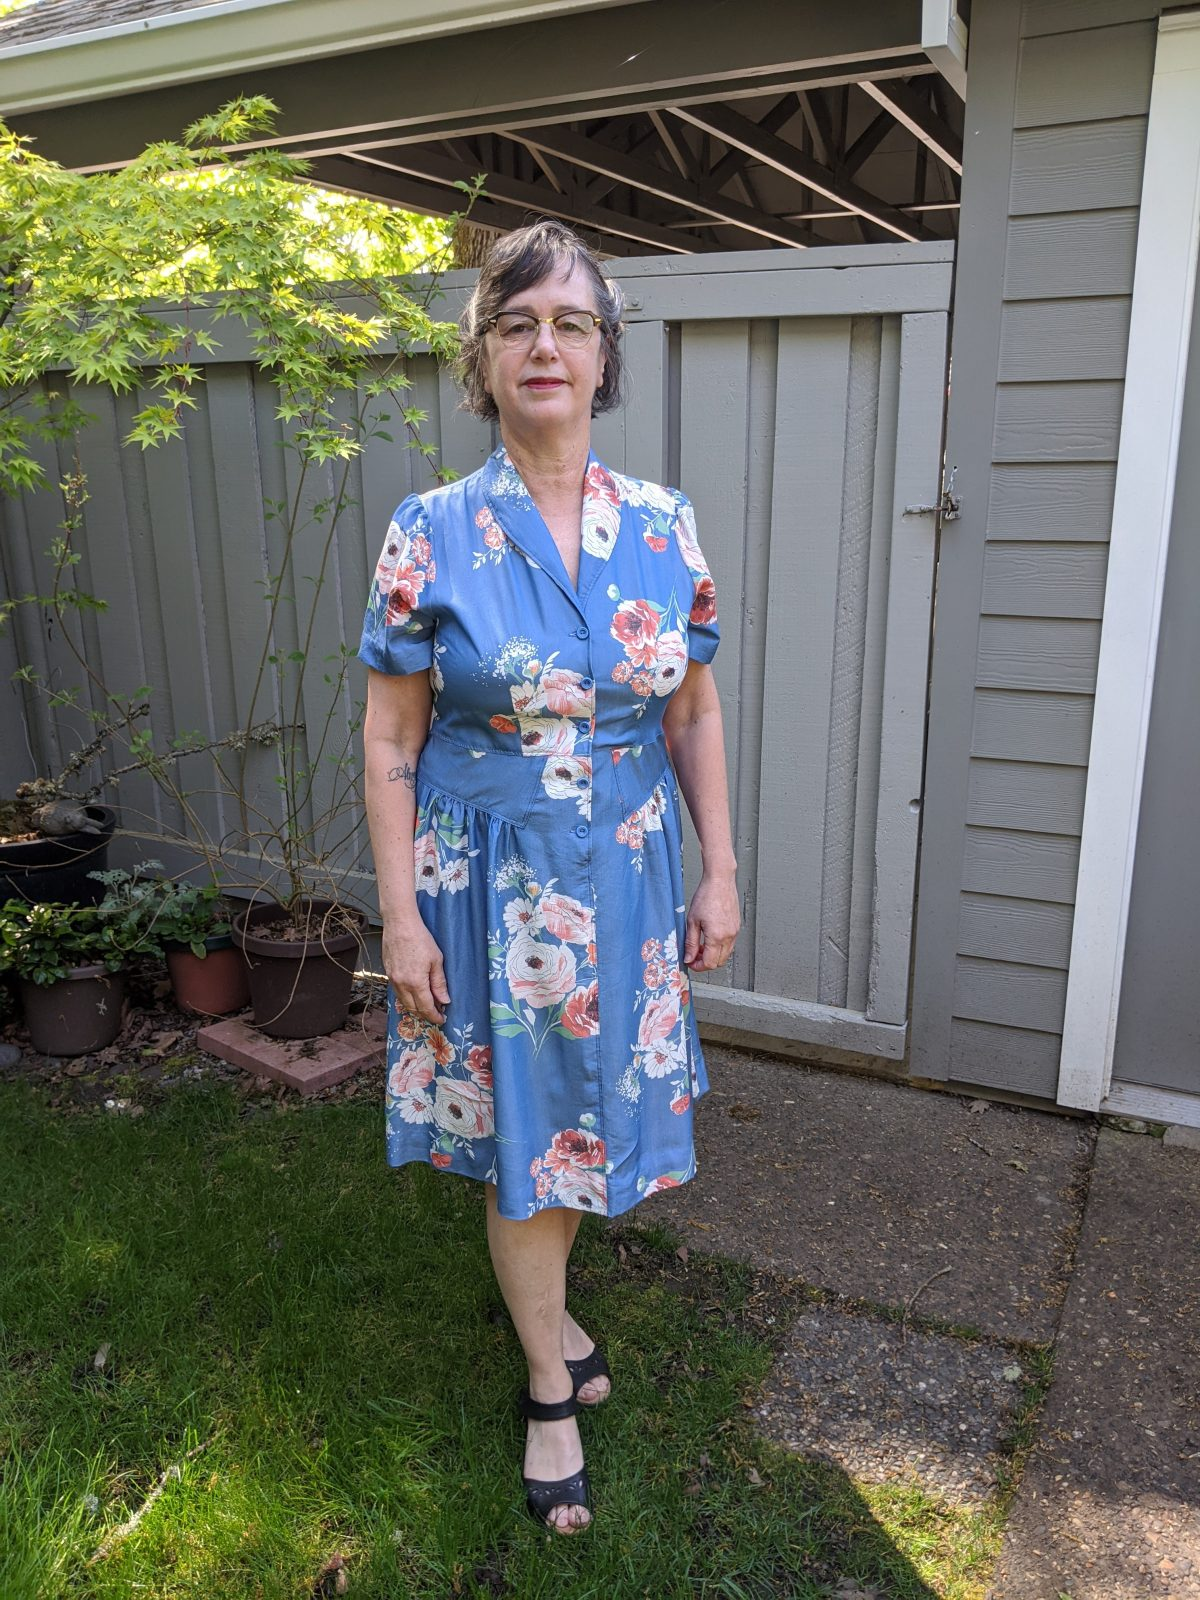 A white woman with short gray hair wears a light blue button front dress that has a pink floral design; it is knee length. She is standing outside in what appears to be the back or the side of a house.